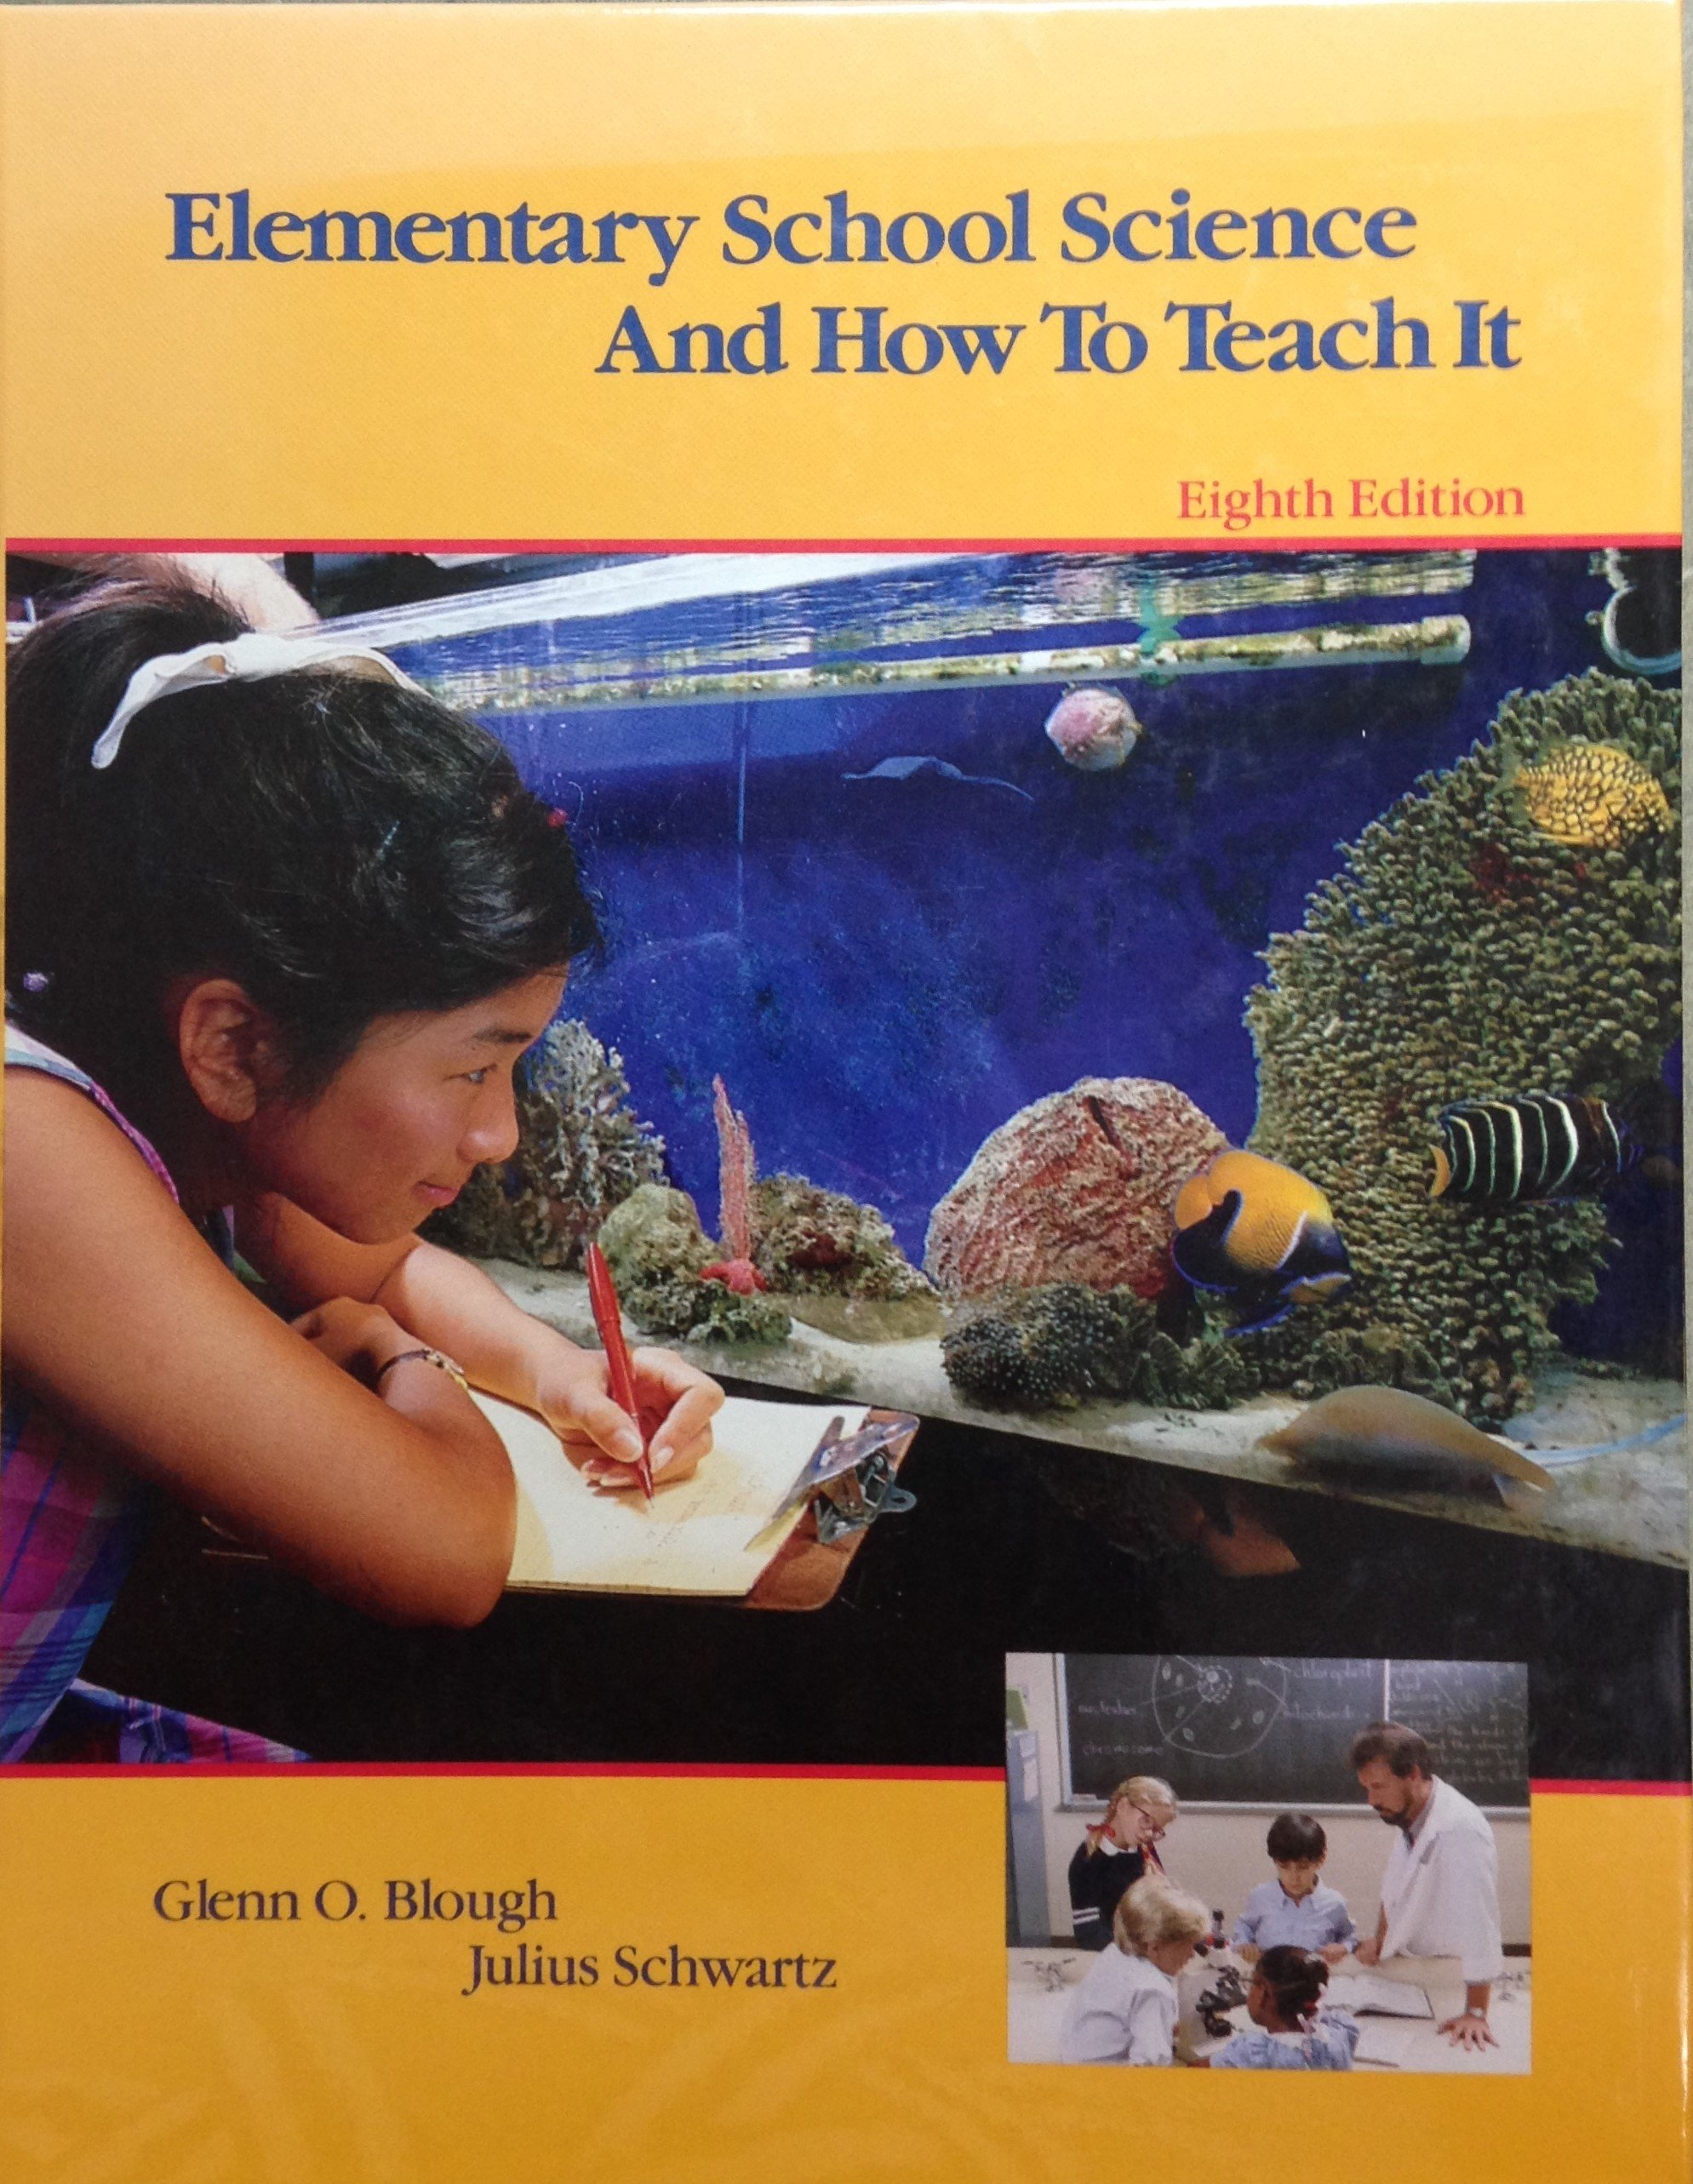 Elementary School Science and How to Teach It:  Eighth Edition 00065